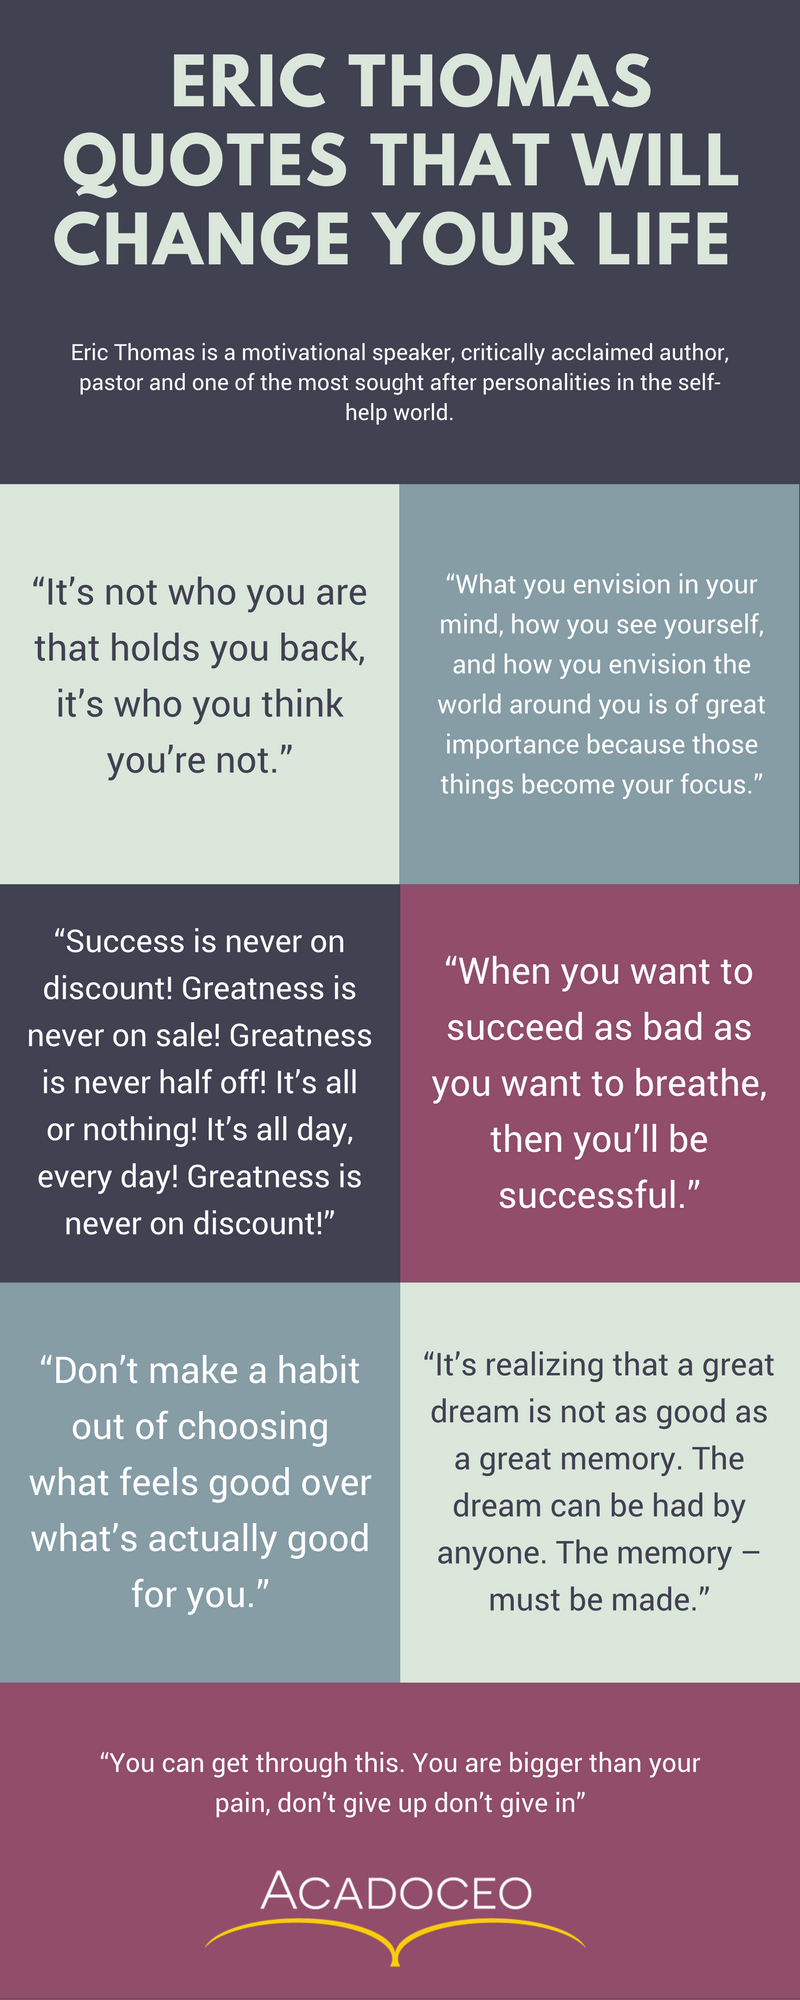 Eric Thomas Quotes that will change your life infographic